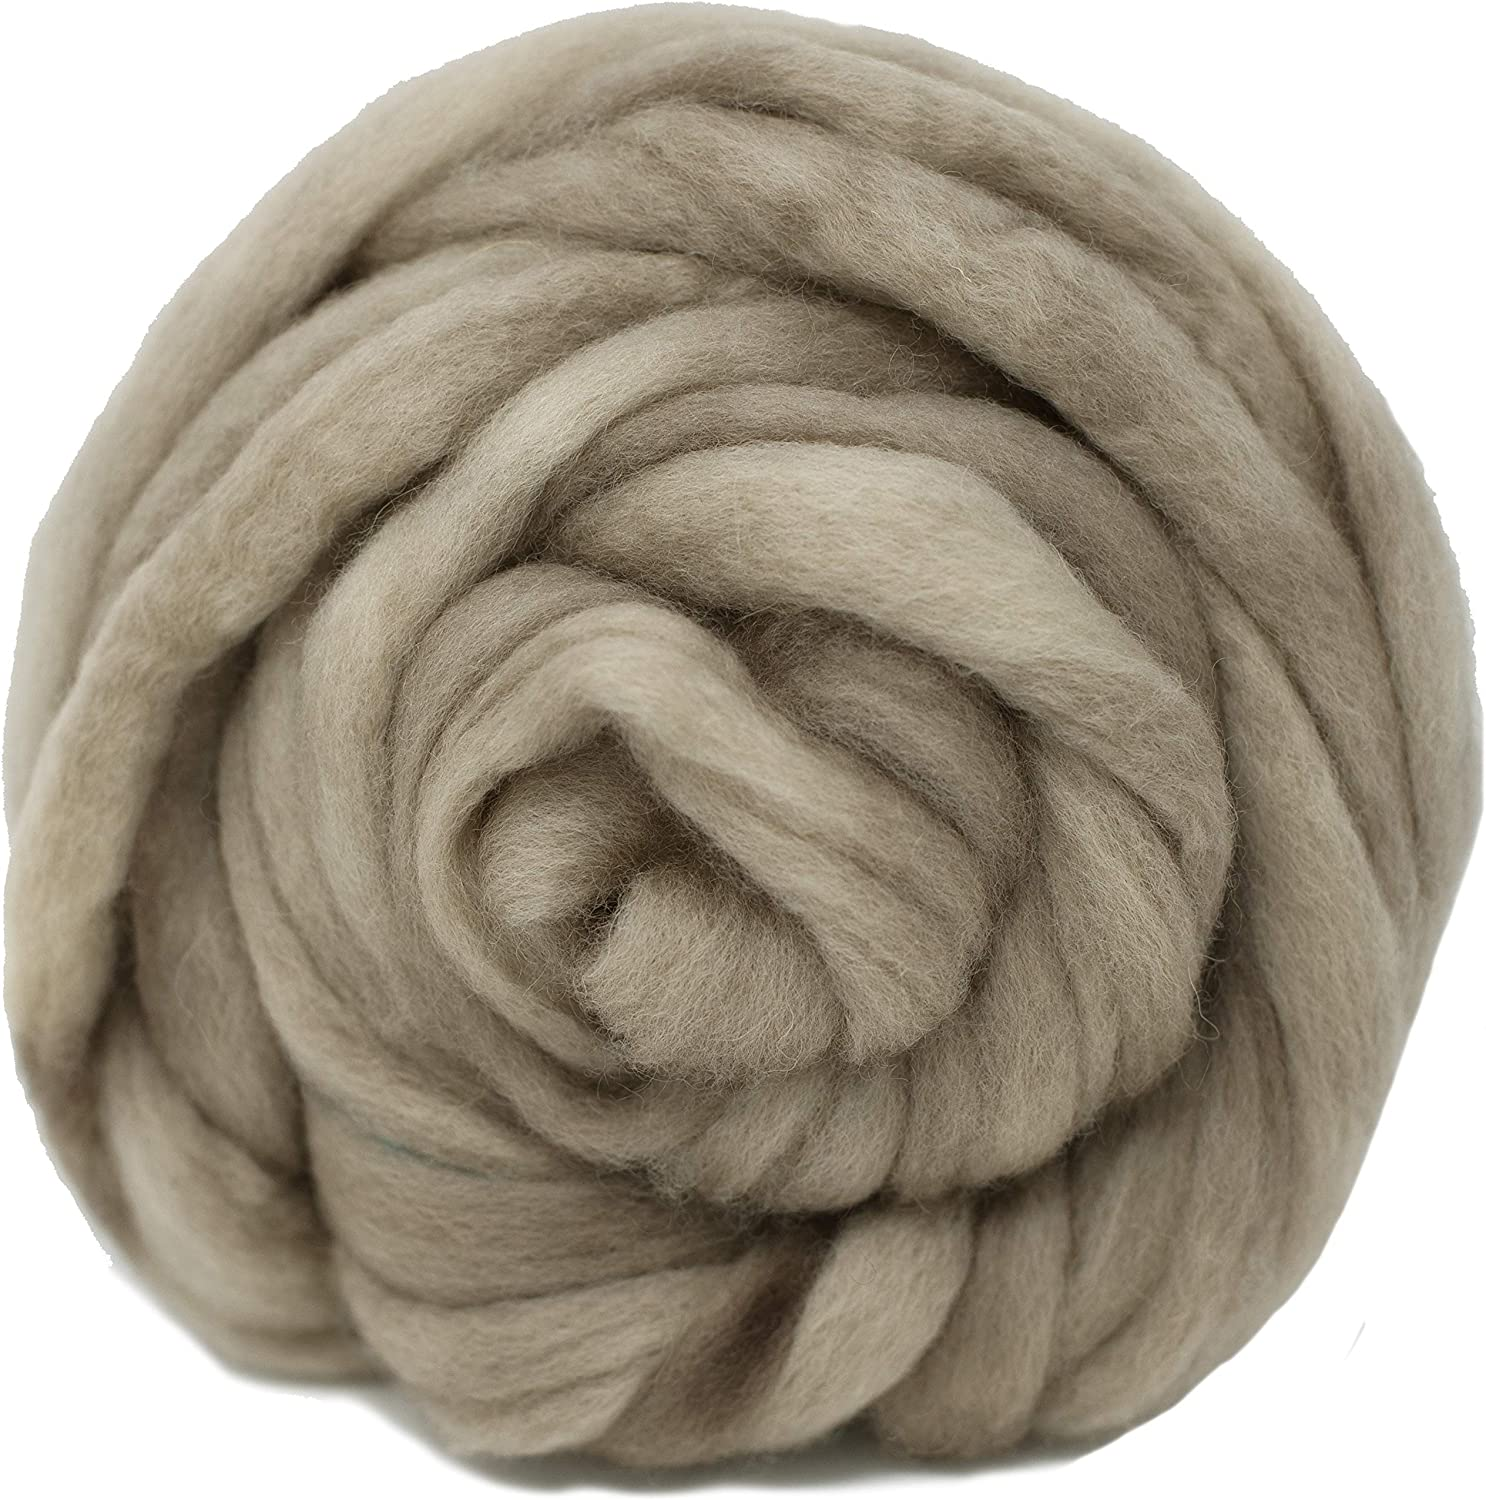 Wool Roving Natural Natural Craft Fiber Ideal for Felting Weaving Wall Hangings and Embellishments Super Soft BFL Combed Top Pre-Drafted for Easy Hand Spinning 4 Ounce